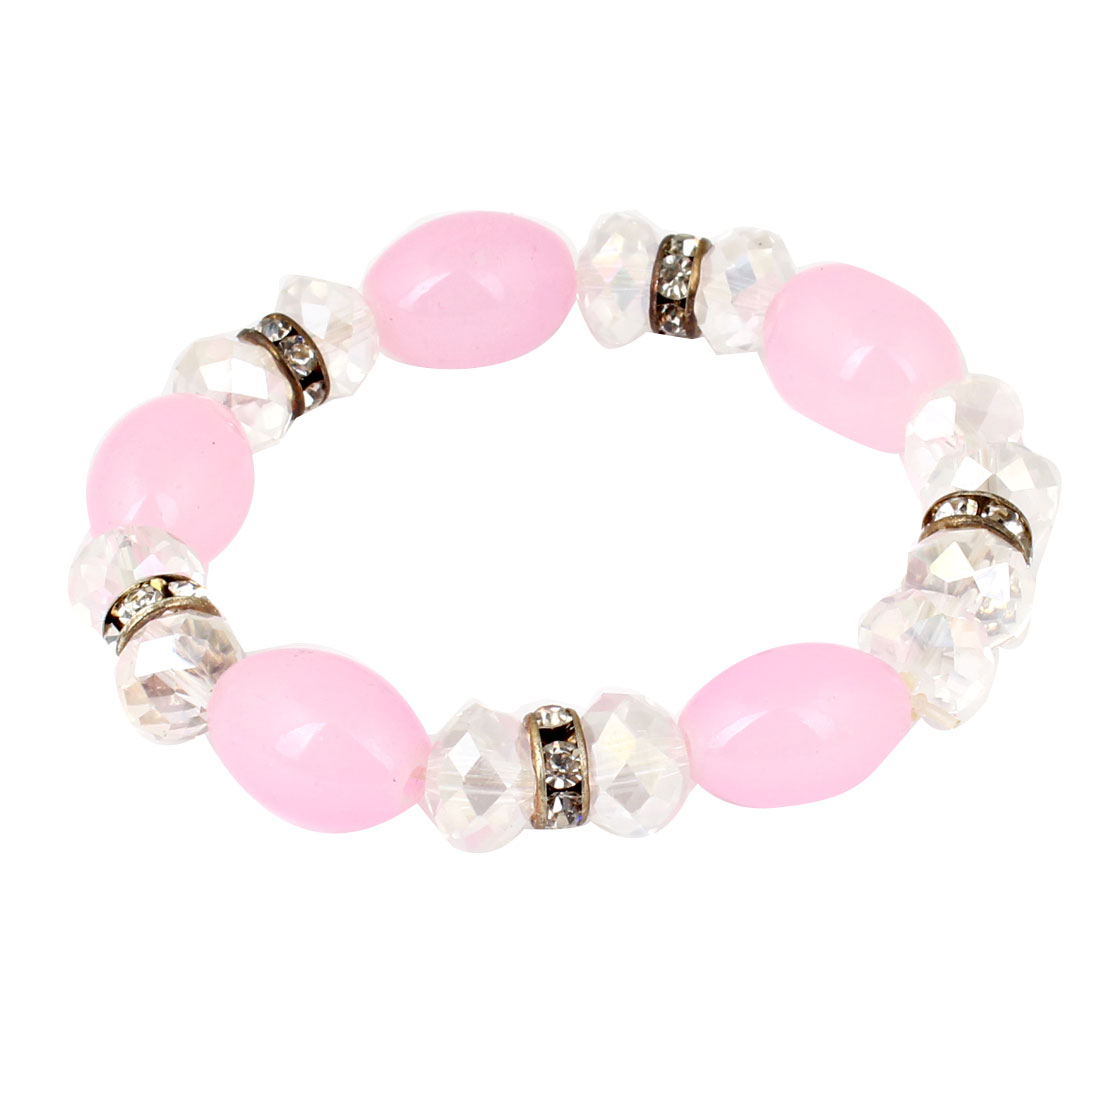 Woman Clear Oval Pink Bead Style Beads Stretch Bangle Cuff Bracelet